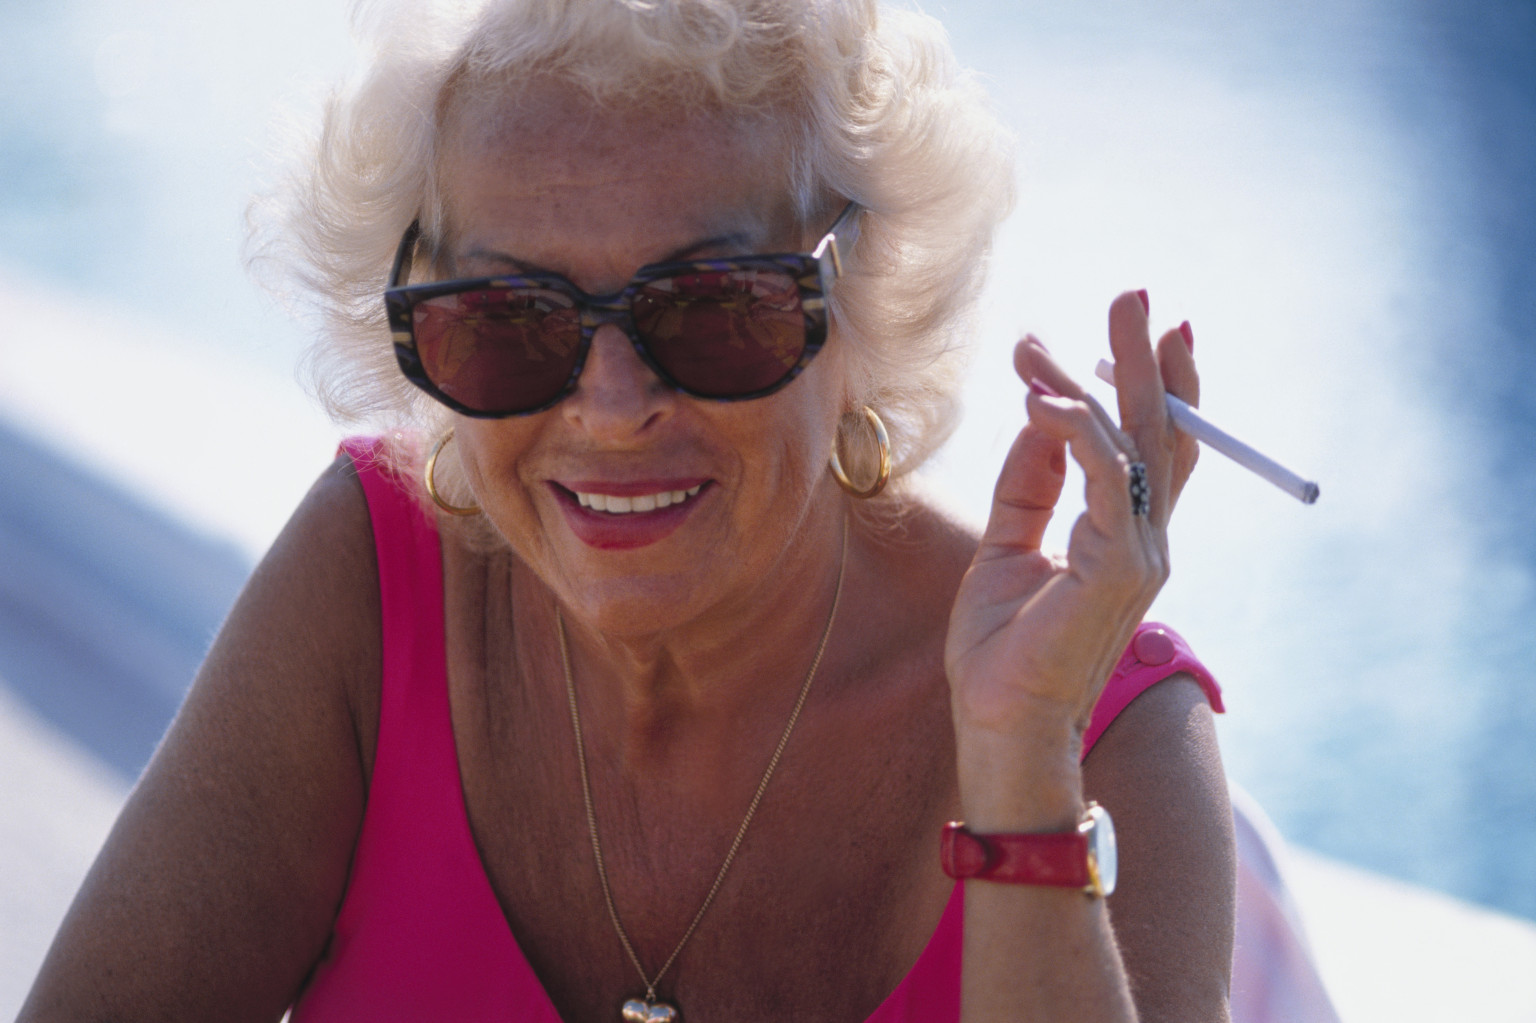 Old women smoking cigarettes